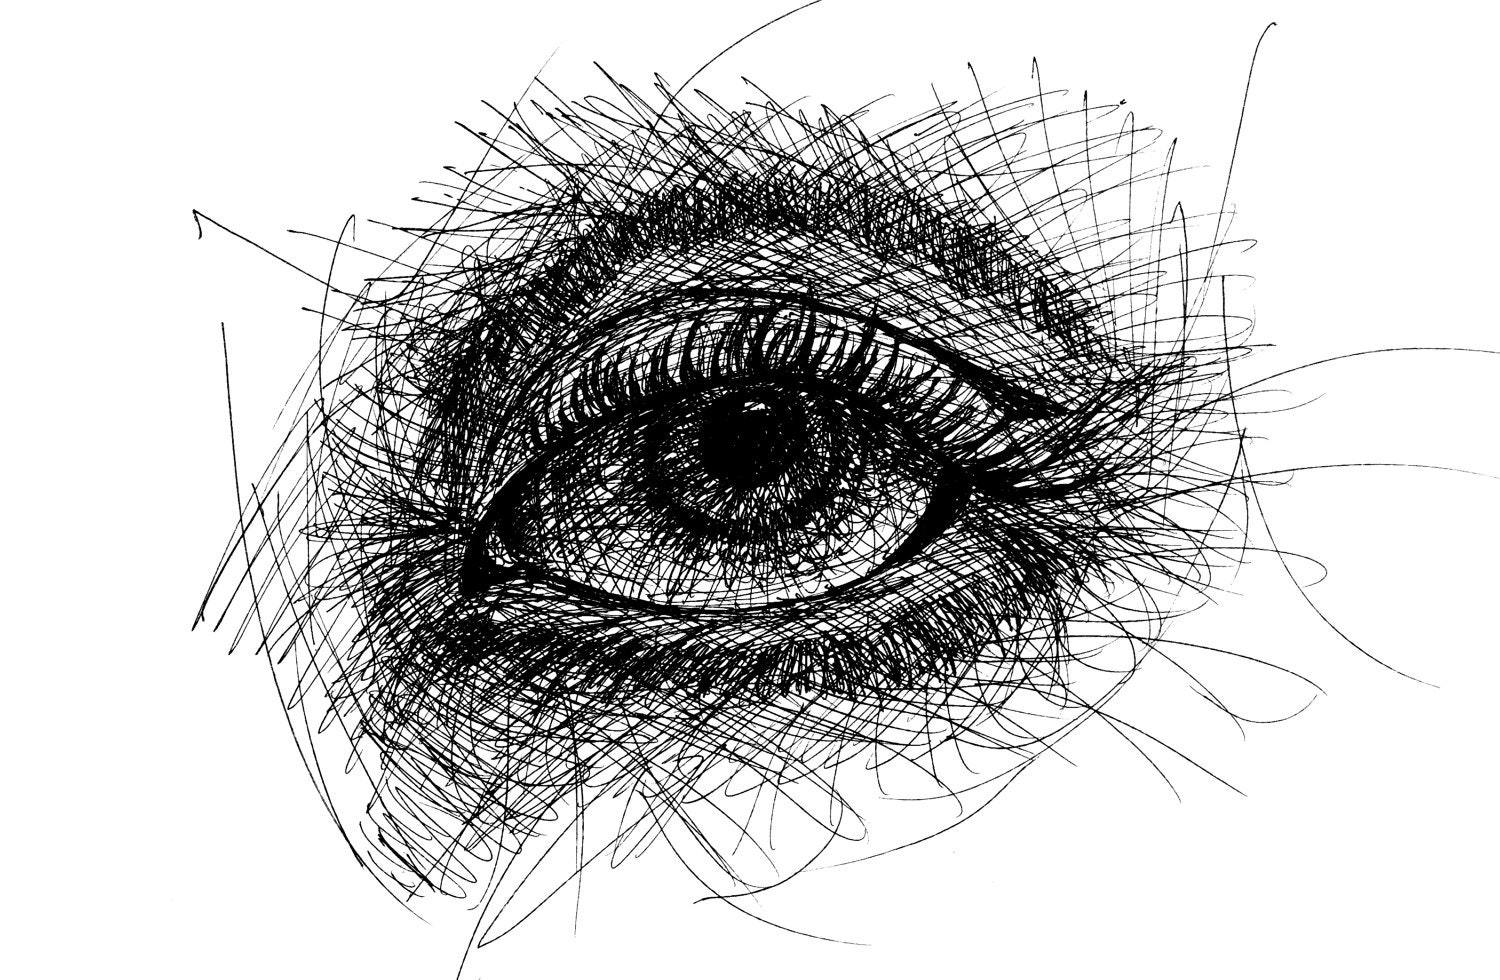 Line Drawing Pen : Art print pen and ink line drawing eye black by